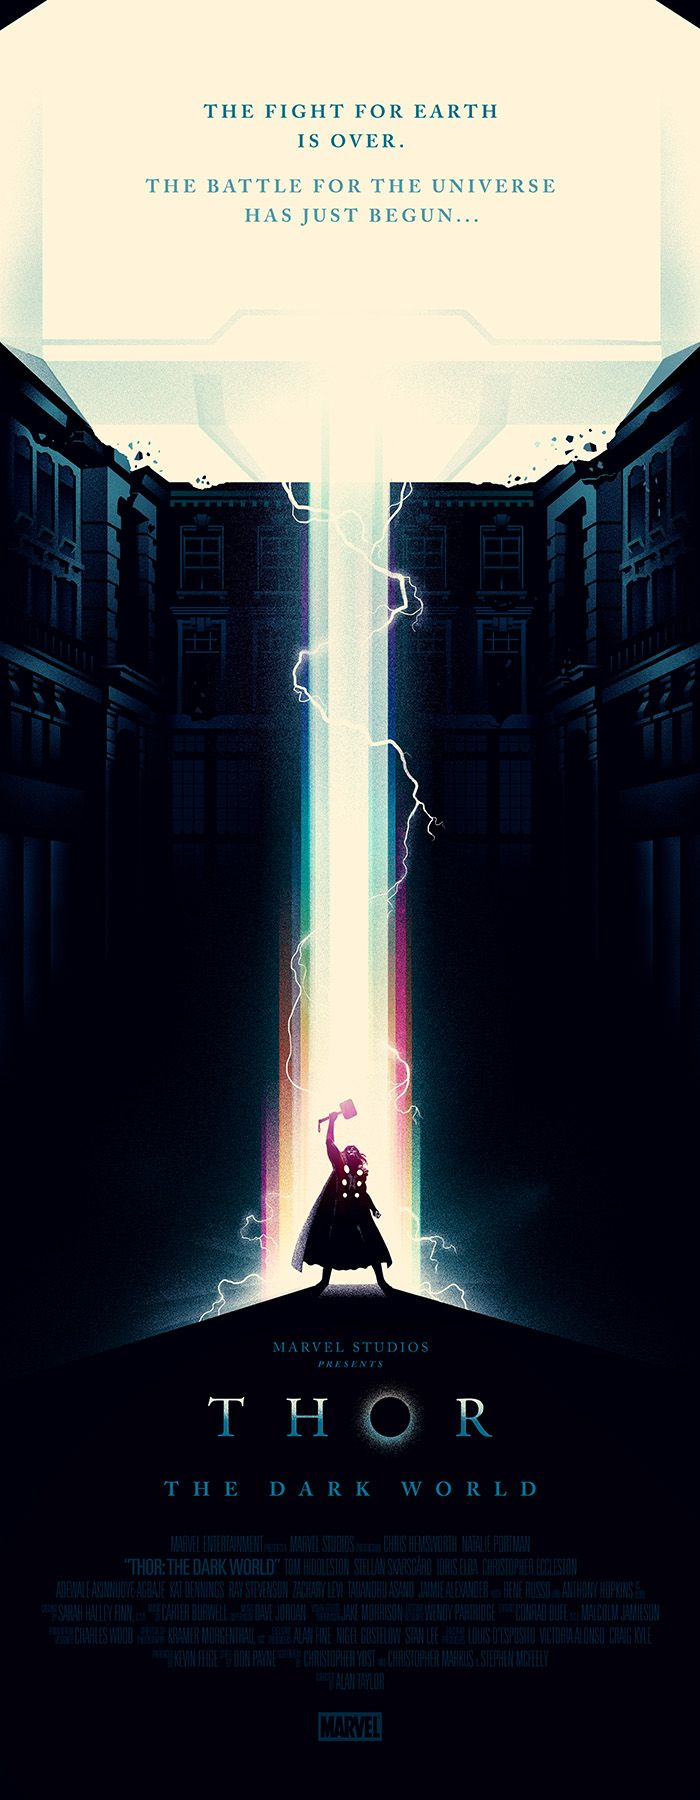 Thor - The Dark World. Just wait until Ragnarok happens...things are going to get crazy!